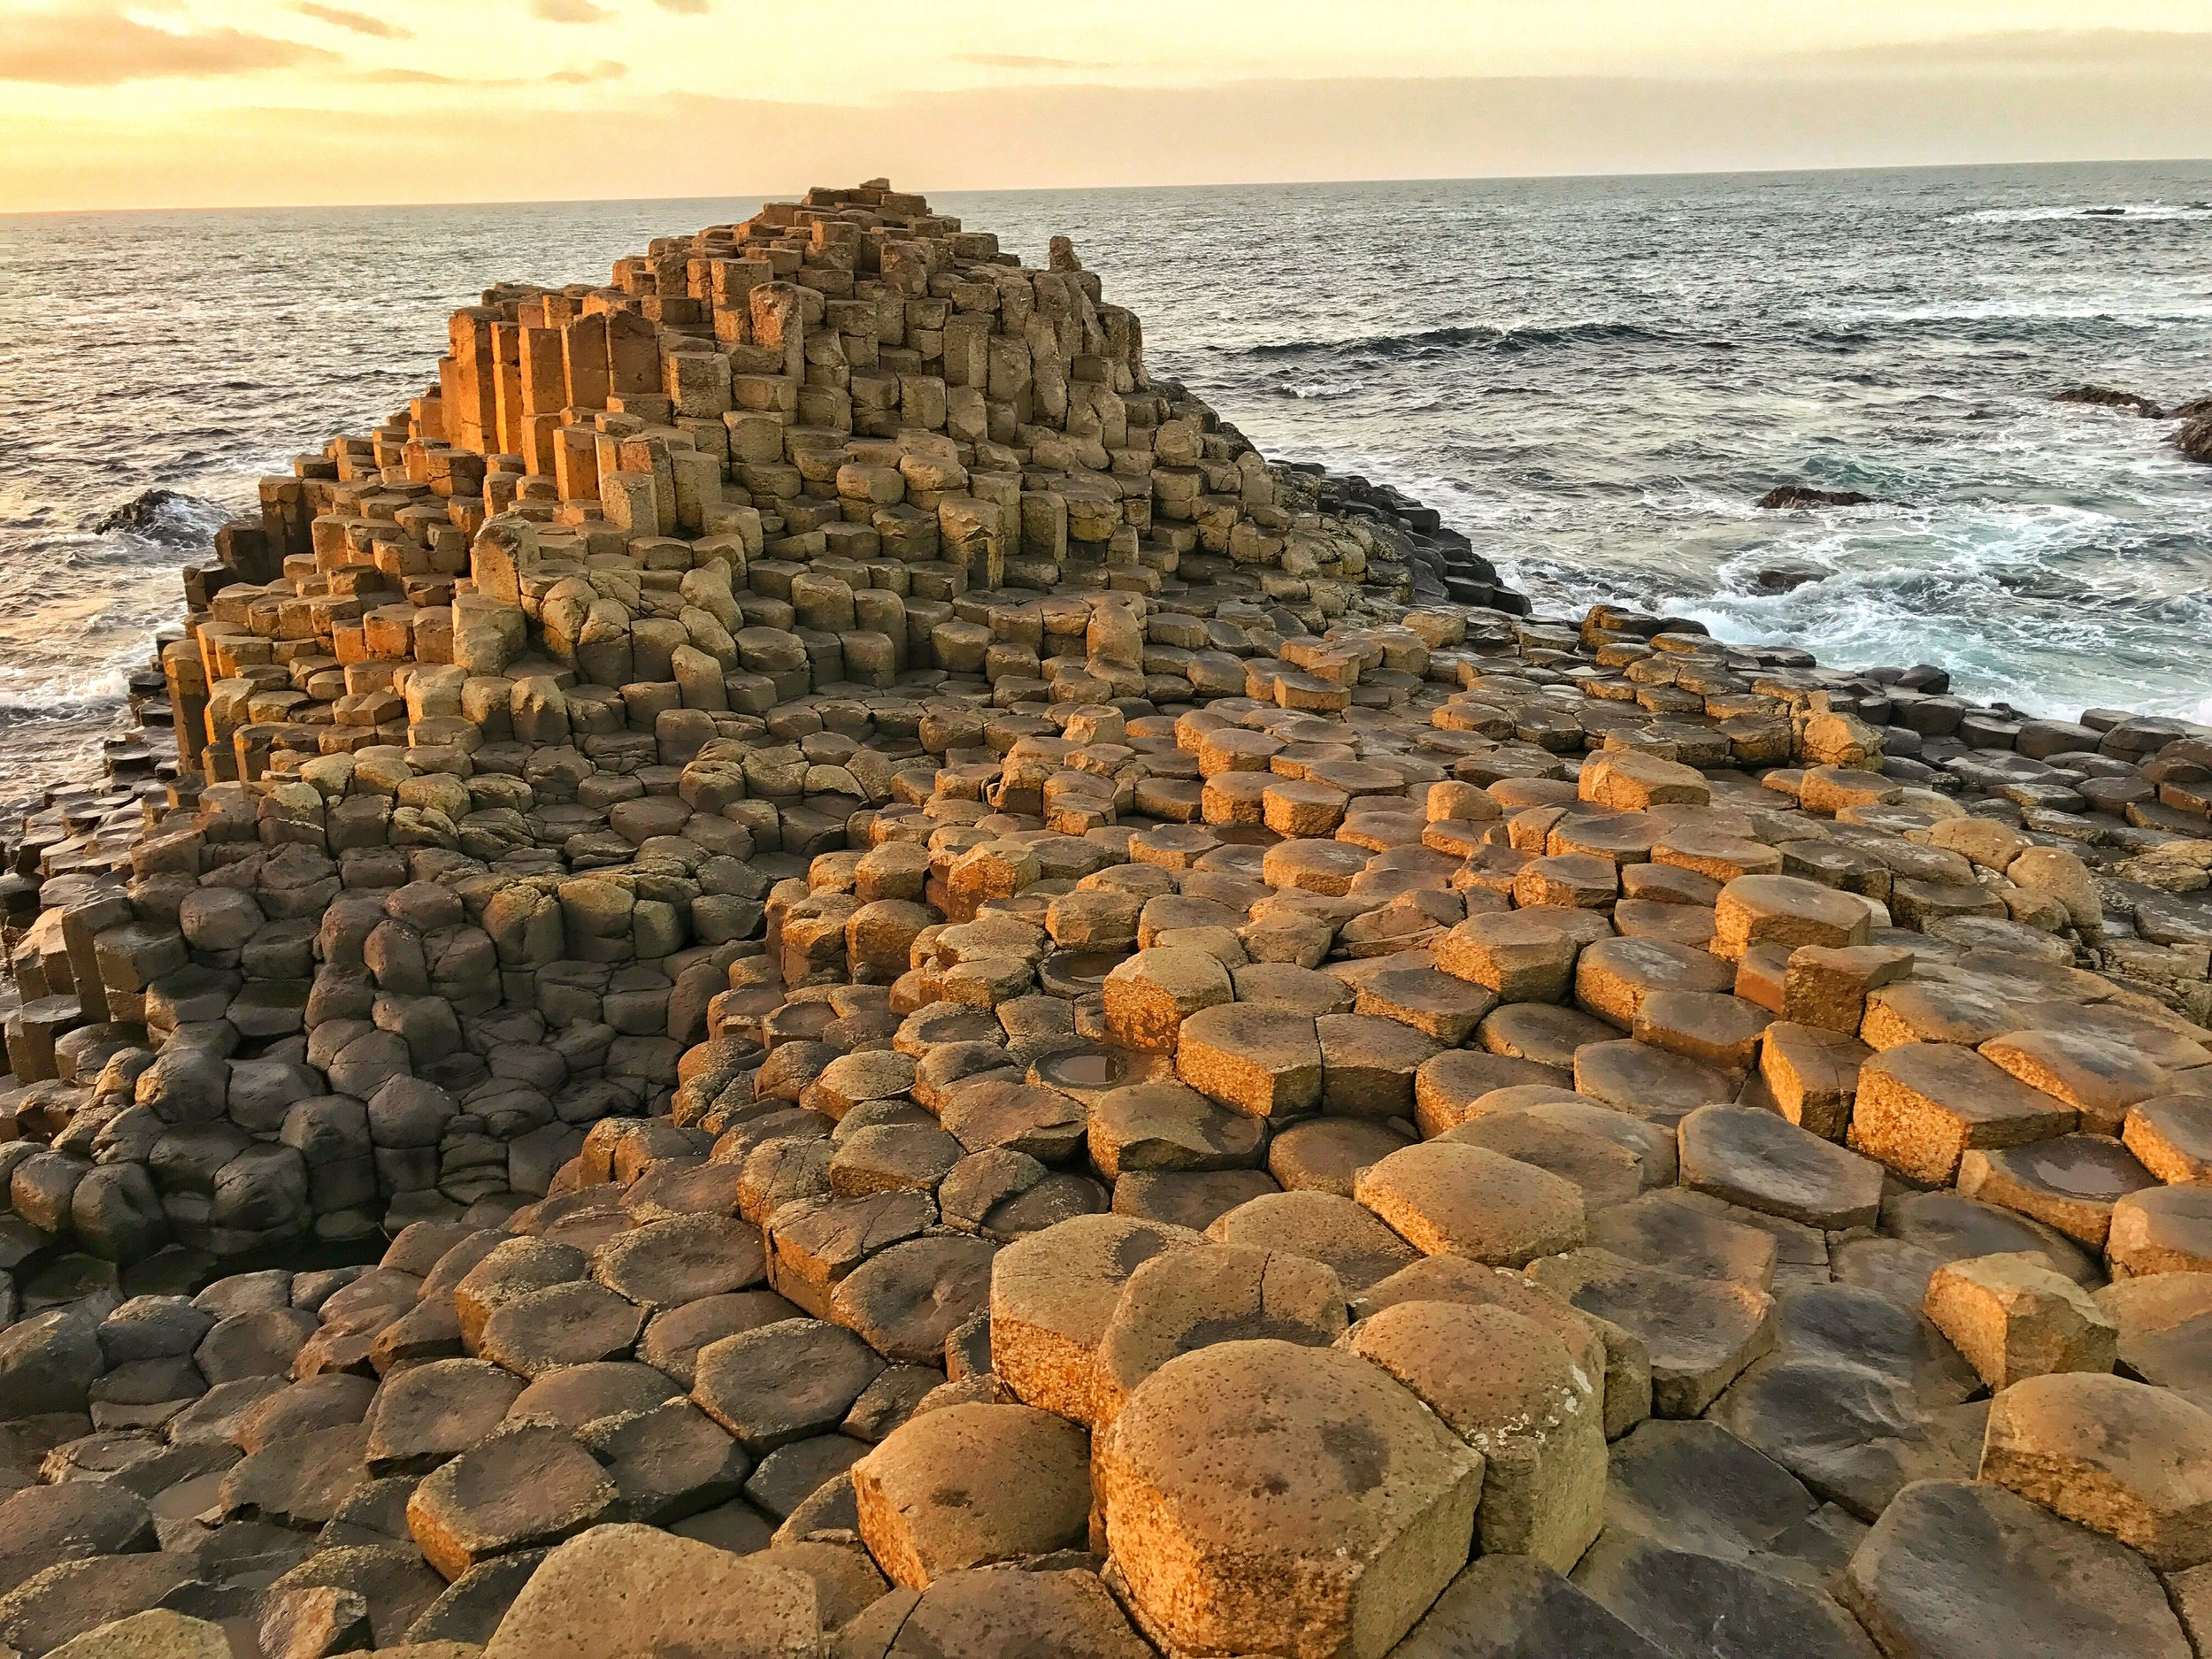 The Giant's Causeway is Northern Ireland's top natural wonder, and is a spot with a plethora of legends and stories.